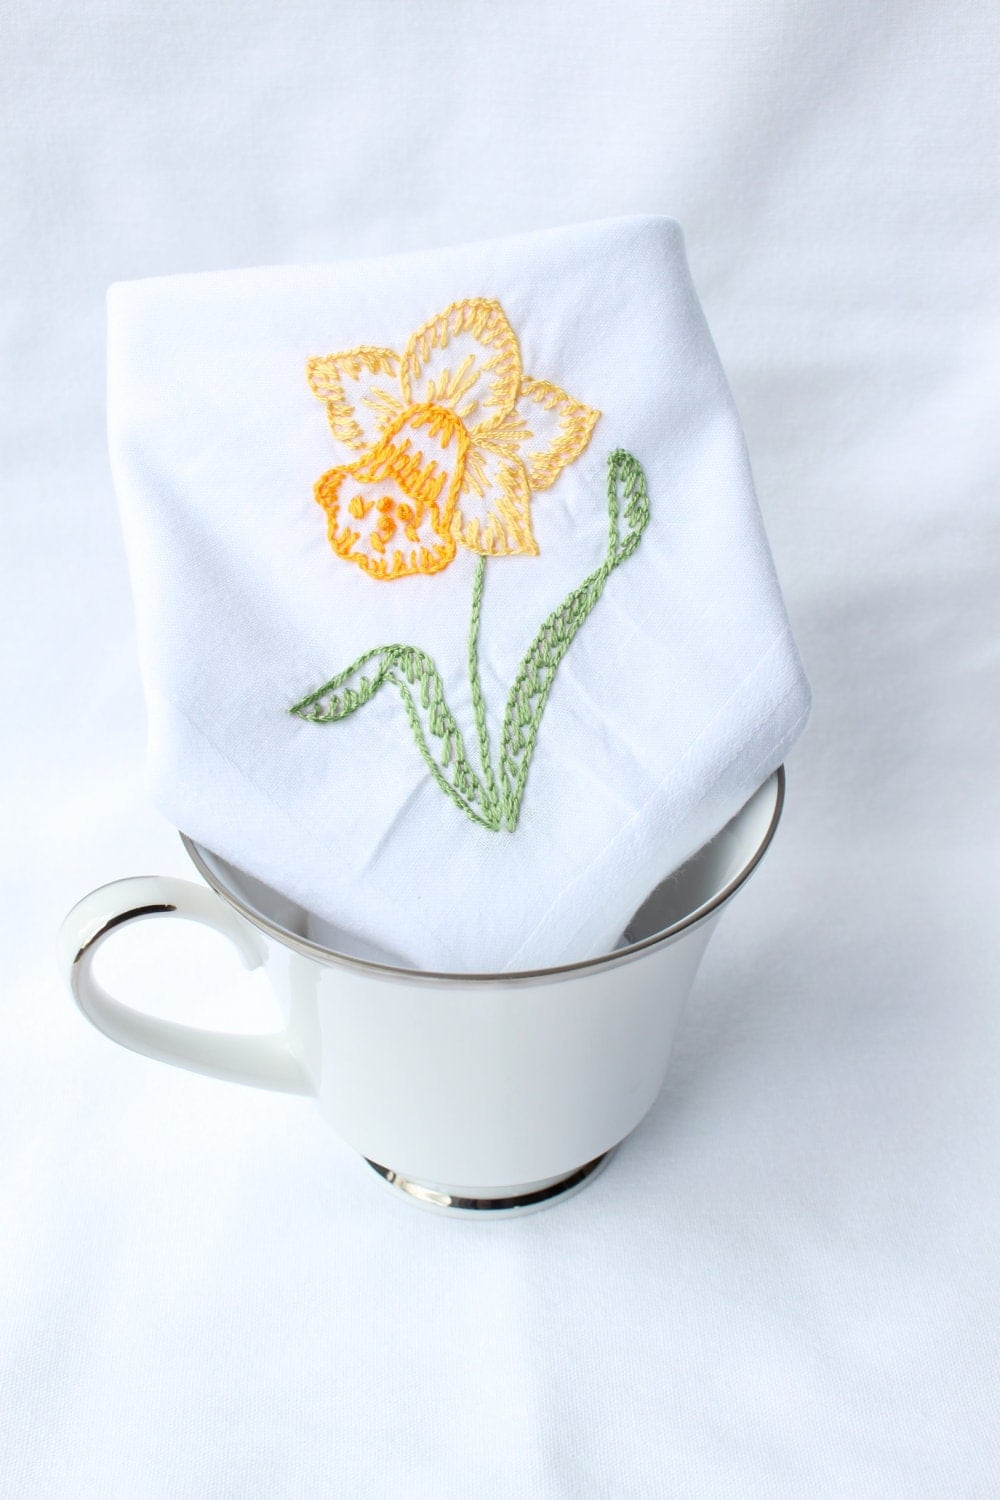 Yellow Daffodil Hand Embroidered Handkerchief - veryprettythings